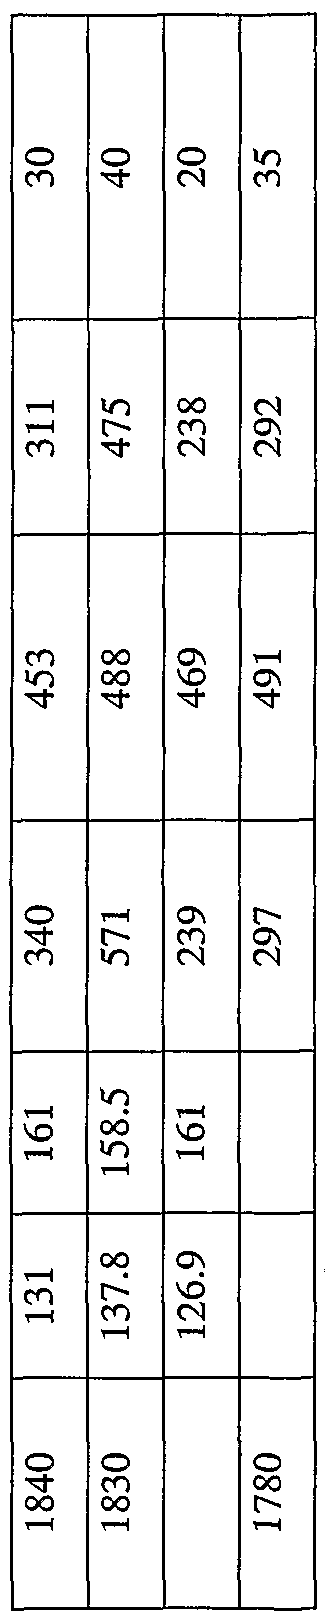 WO2005023951A1 - Composition and method relating to a hot